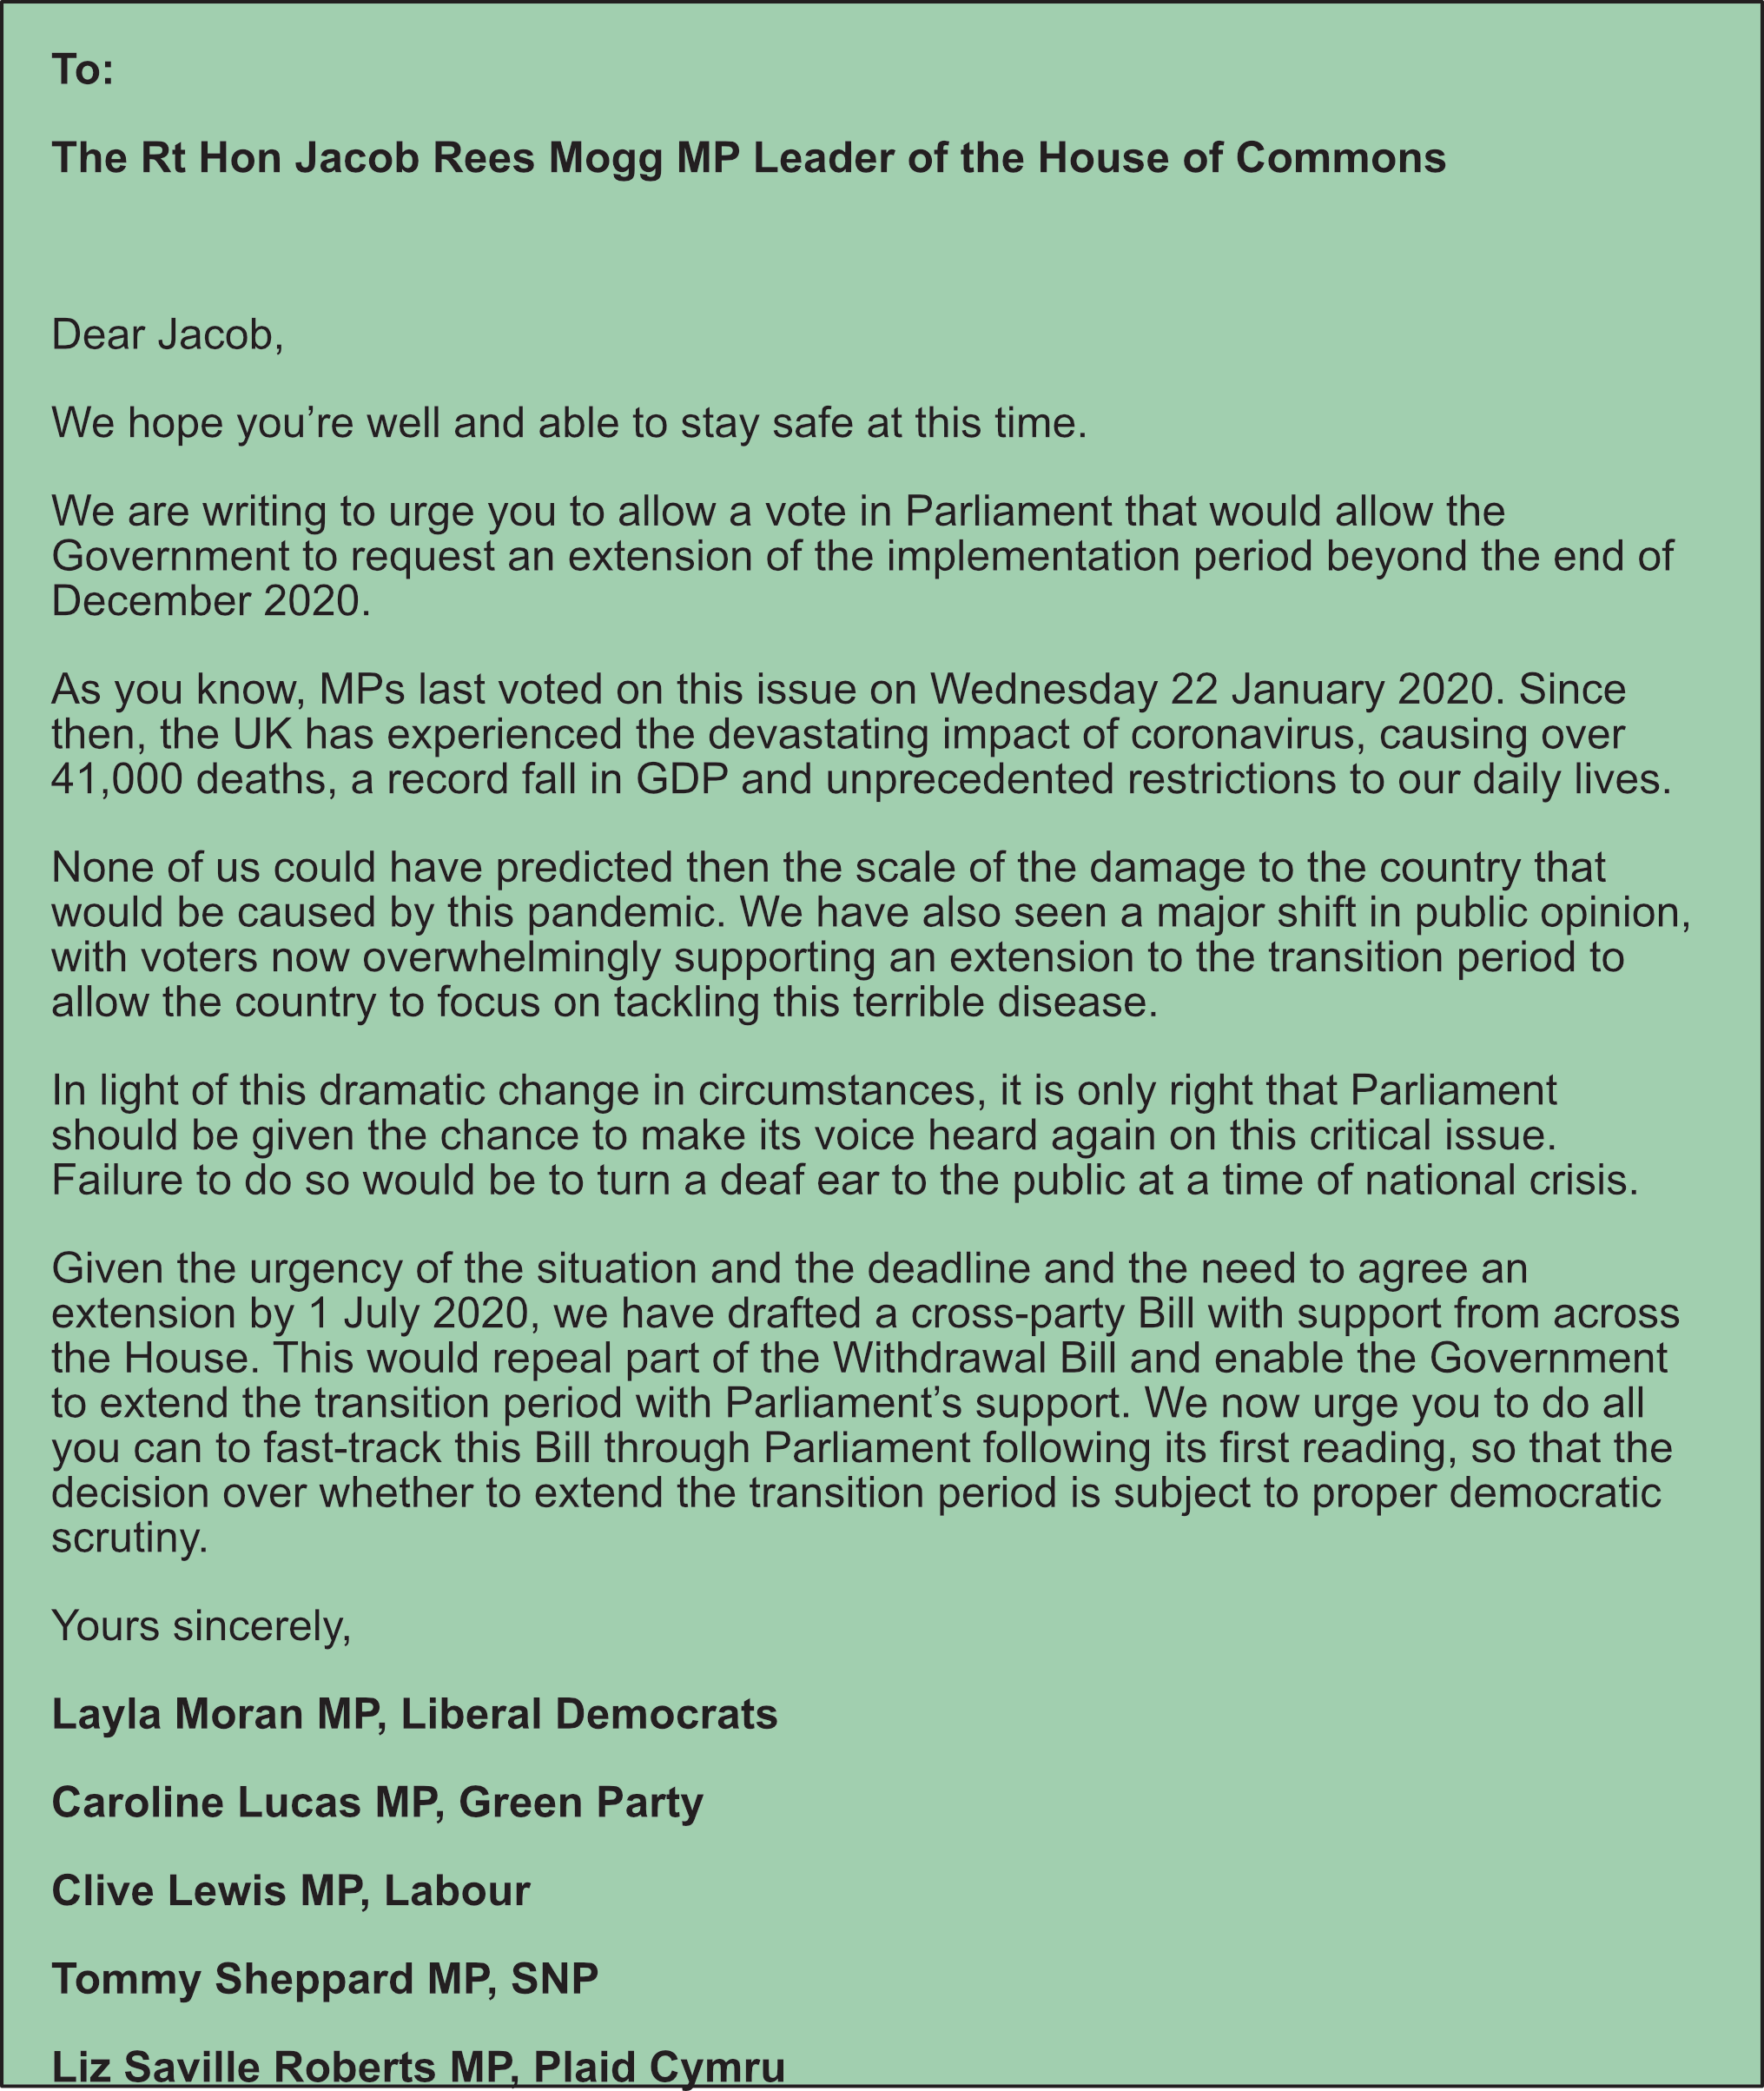 Letter to Leader of the House of Commons